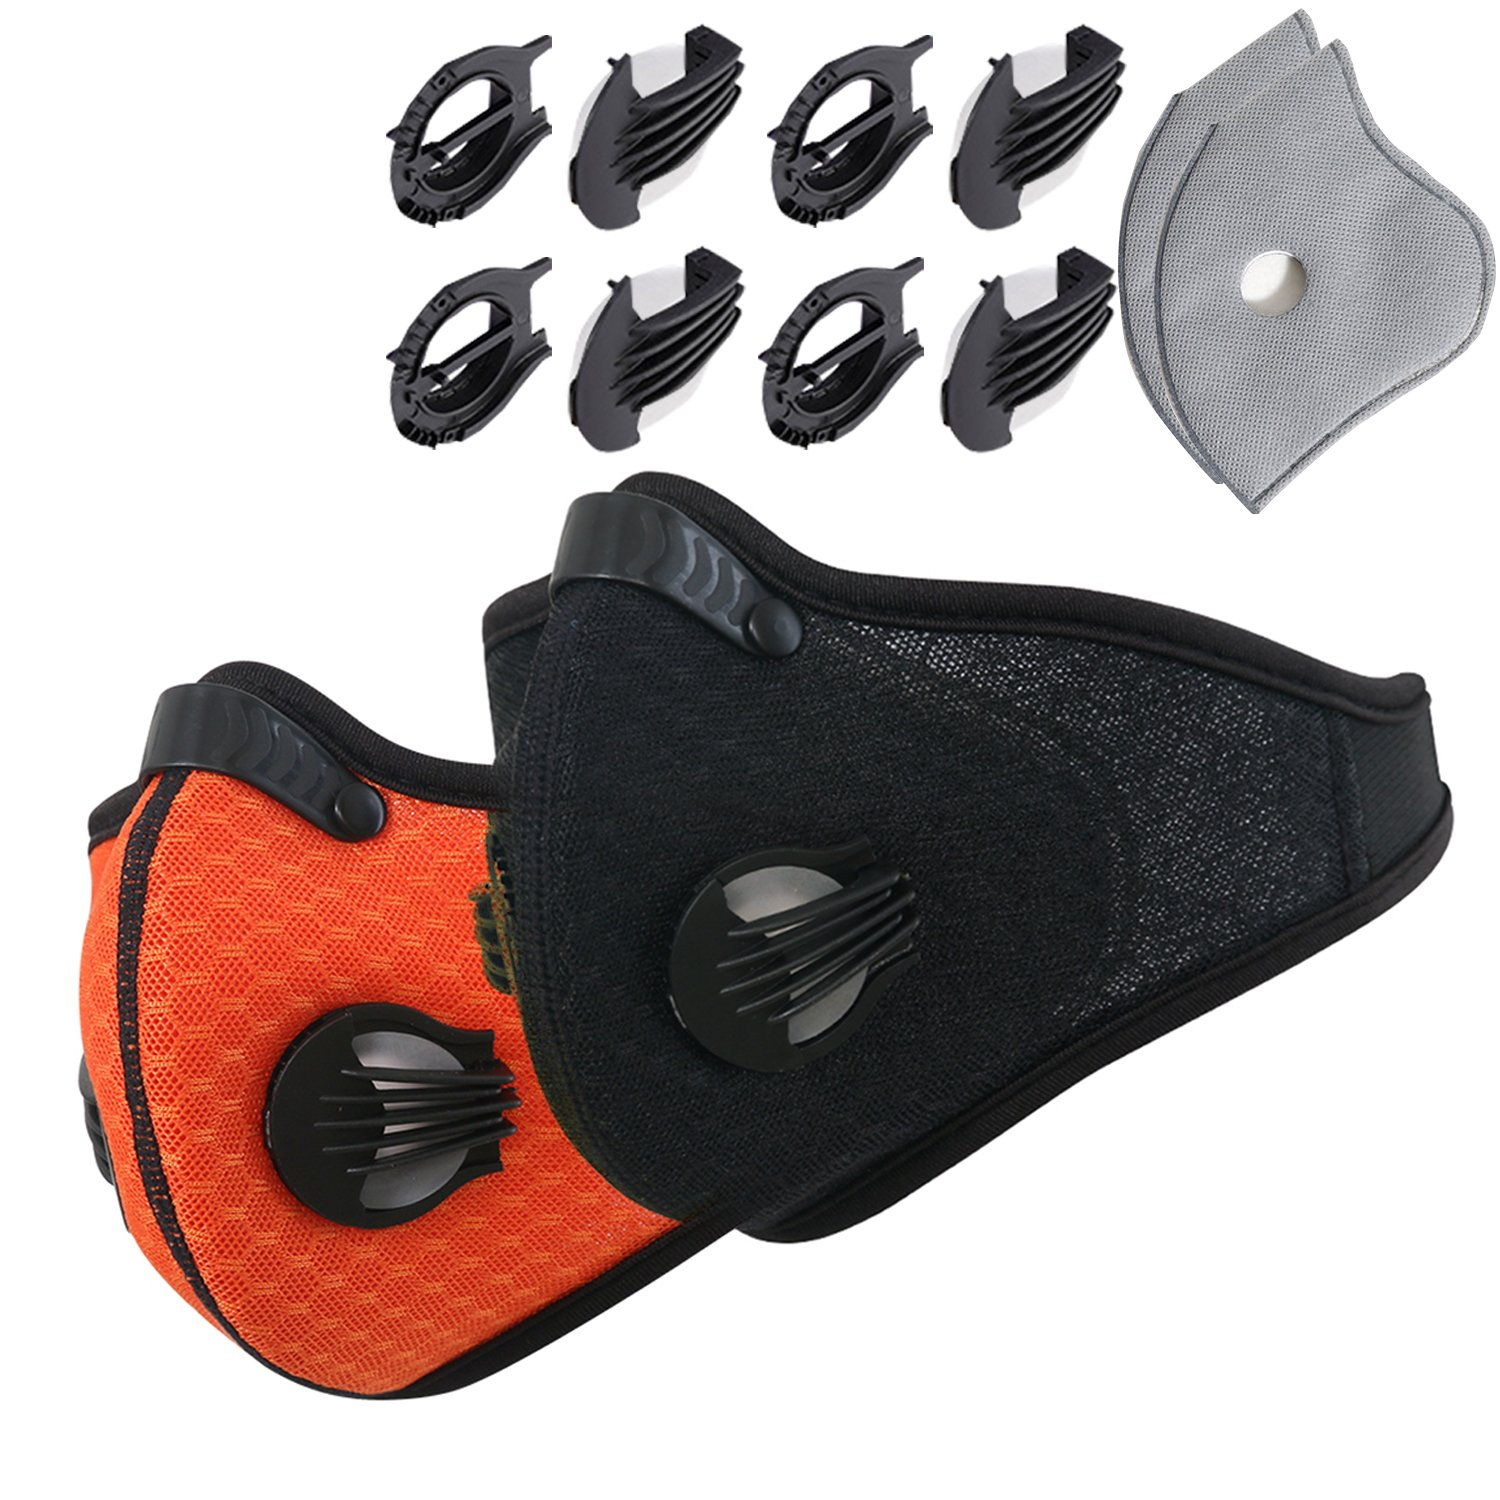 Dustproof Masks - Activated Carbon Dust Mask with Extra Filter Cotton Sheet and Valves for Exhaust Gas, Pollen Allergy, PM2.5, Running, Cycling, Outdoor Activities (2 Set Black and Orange, Dust Masks)